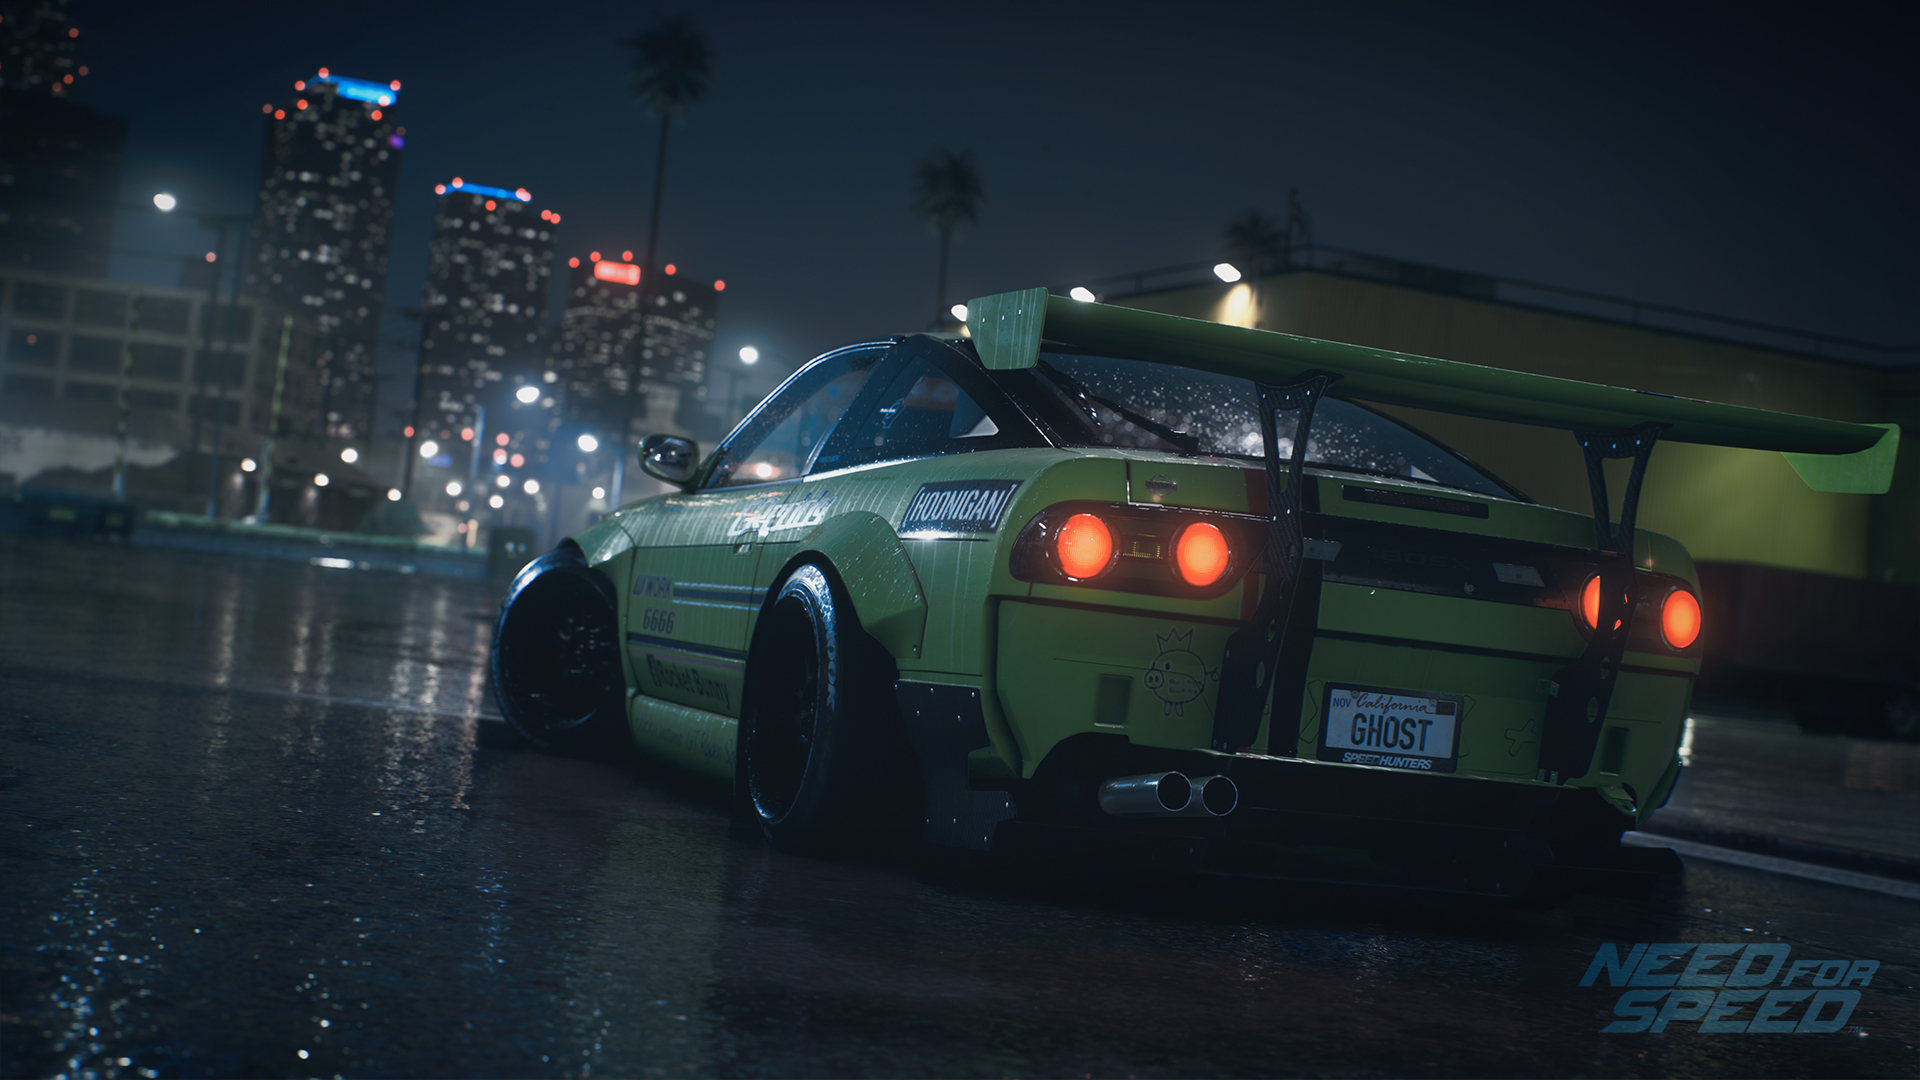 Spoilers | Need for Speed Wiki | FANDOM powered by Wikia